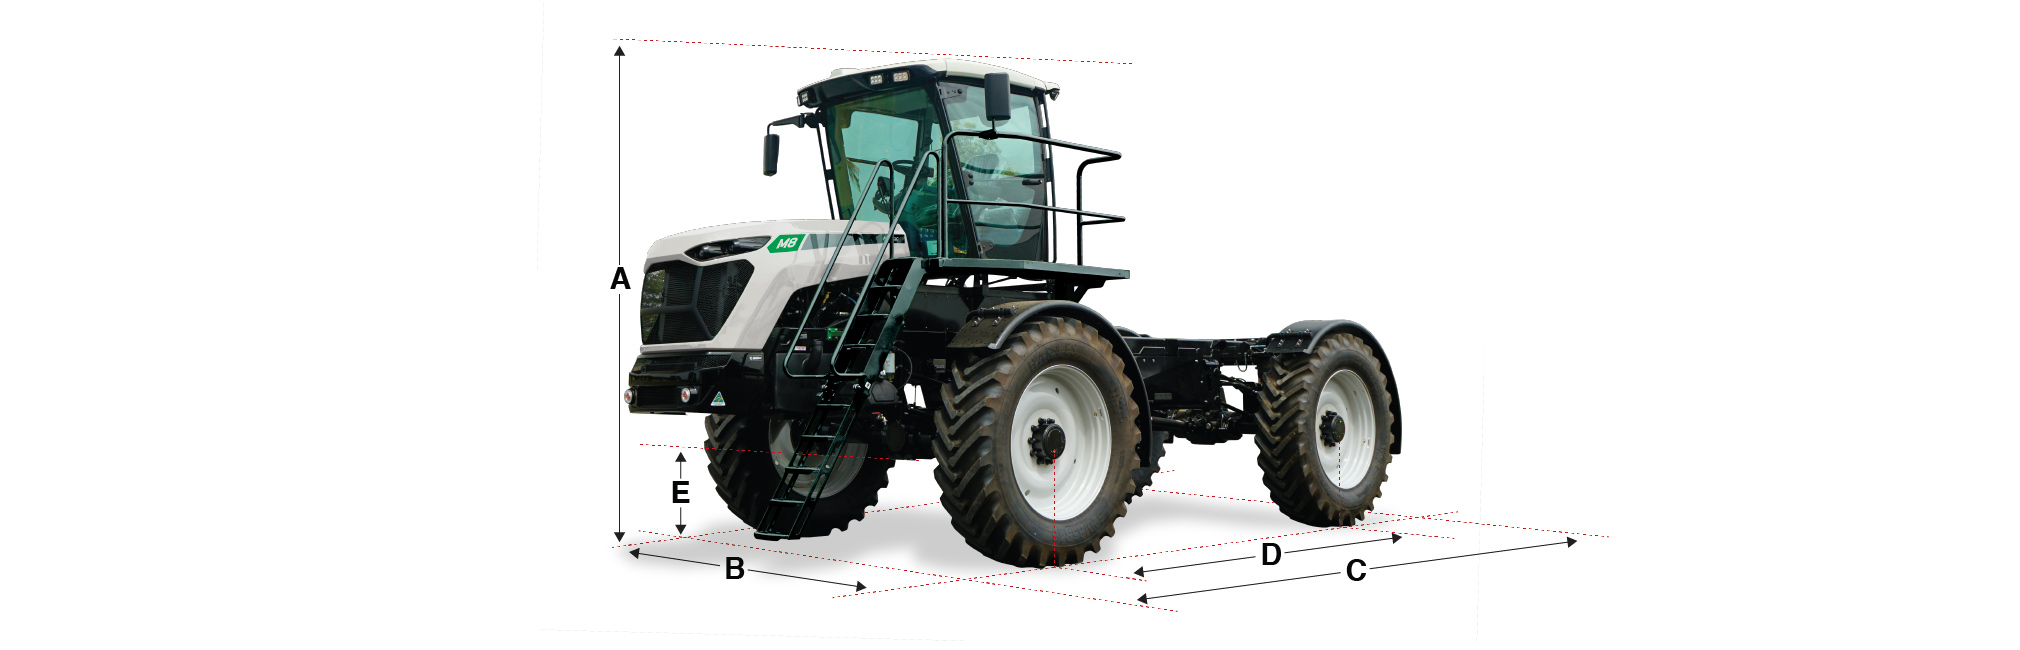 M8 Cab Chassis dimensions